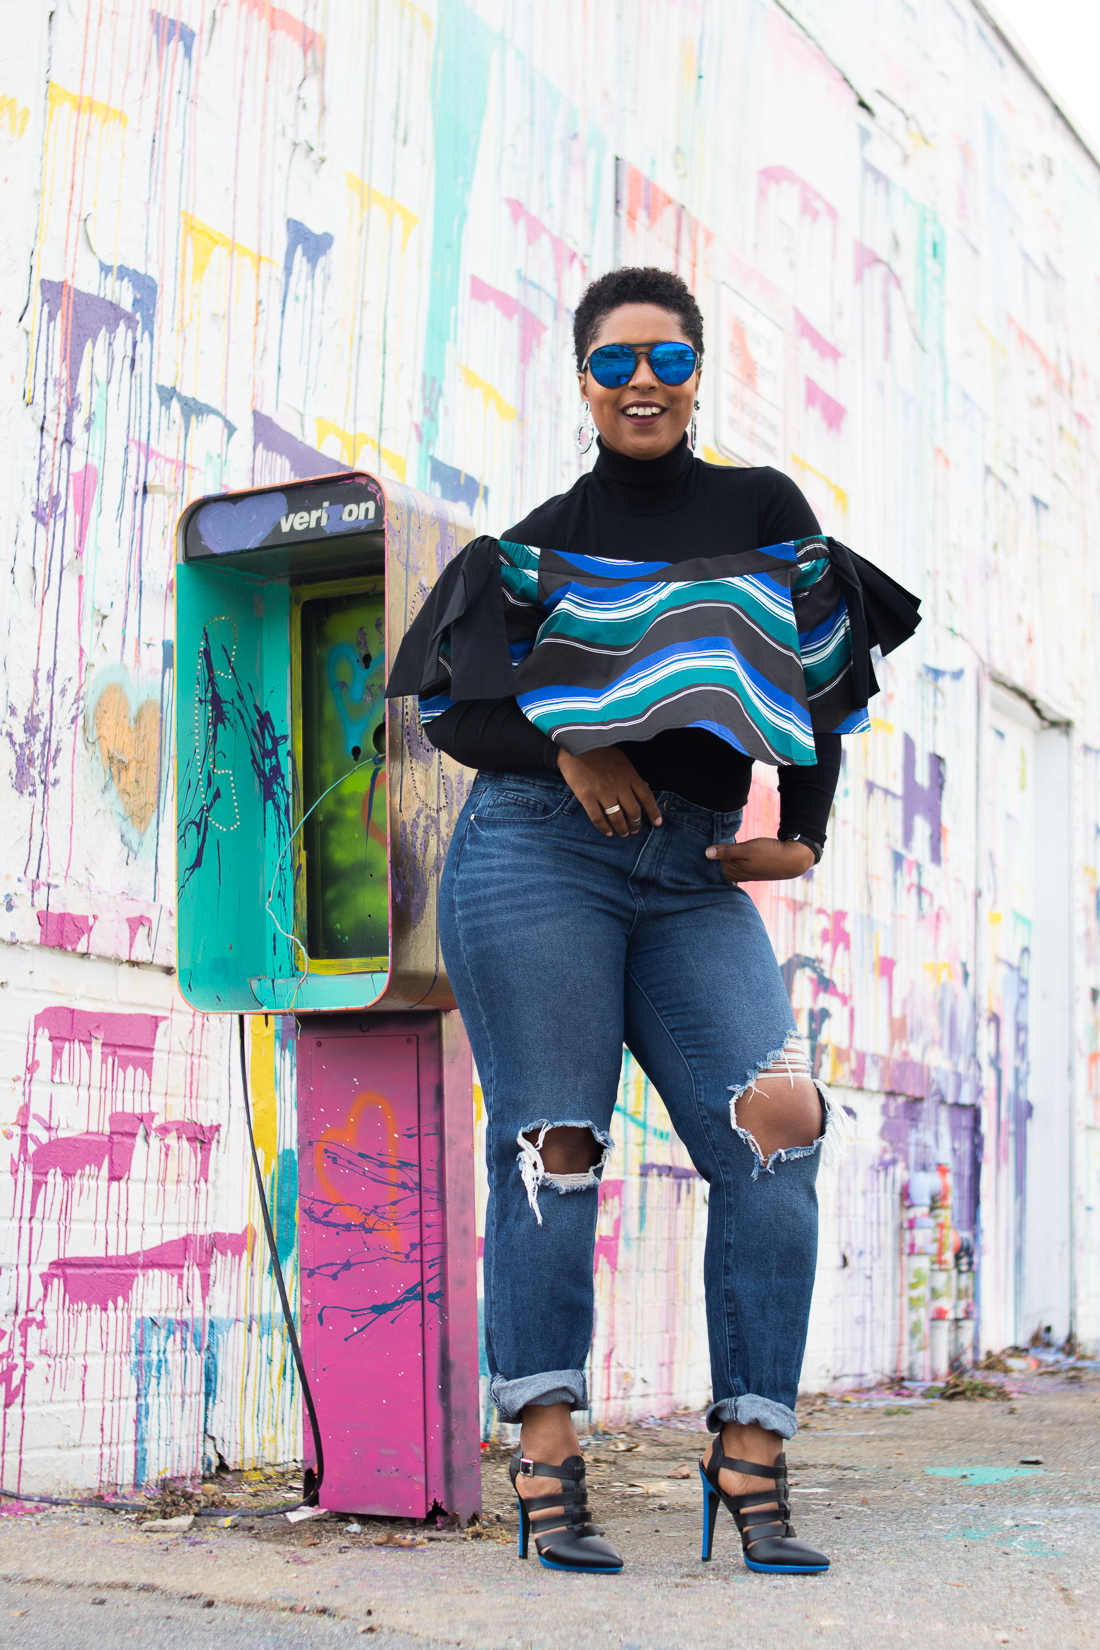 top dc bloger jen jean-pierre showing how to style a turtleneck